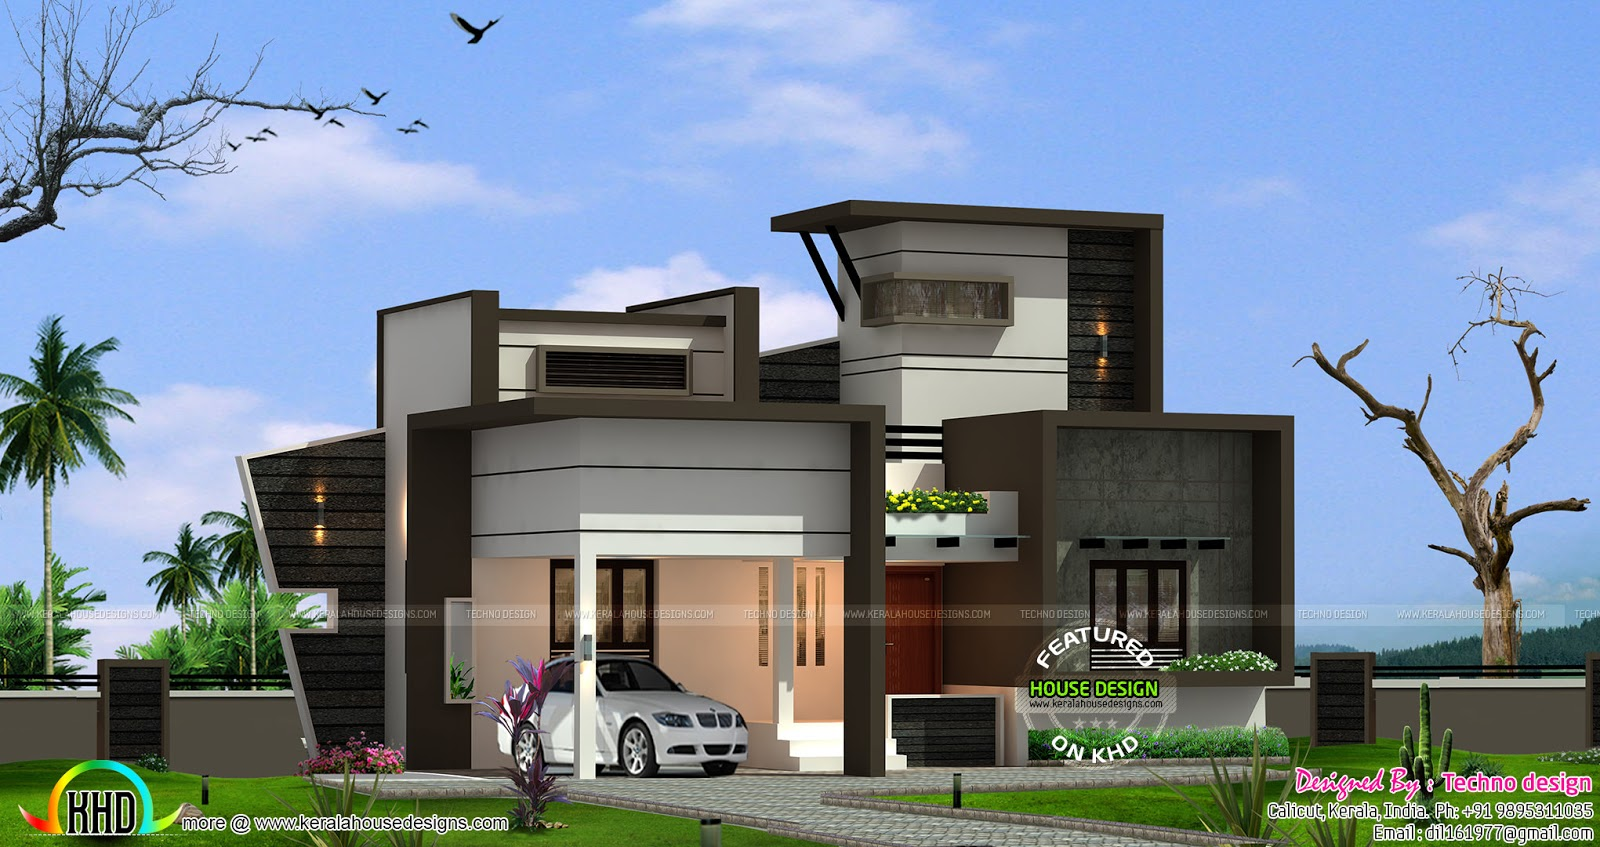 15 lakhs house in kerala - Kerala home design and floor plans